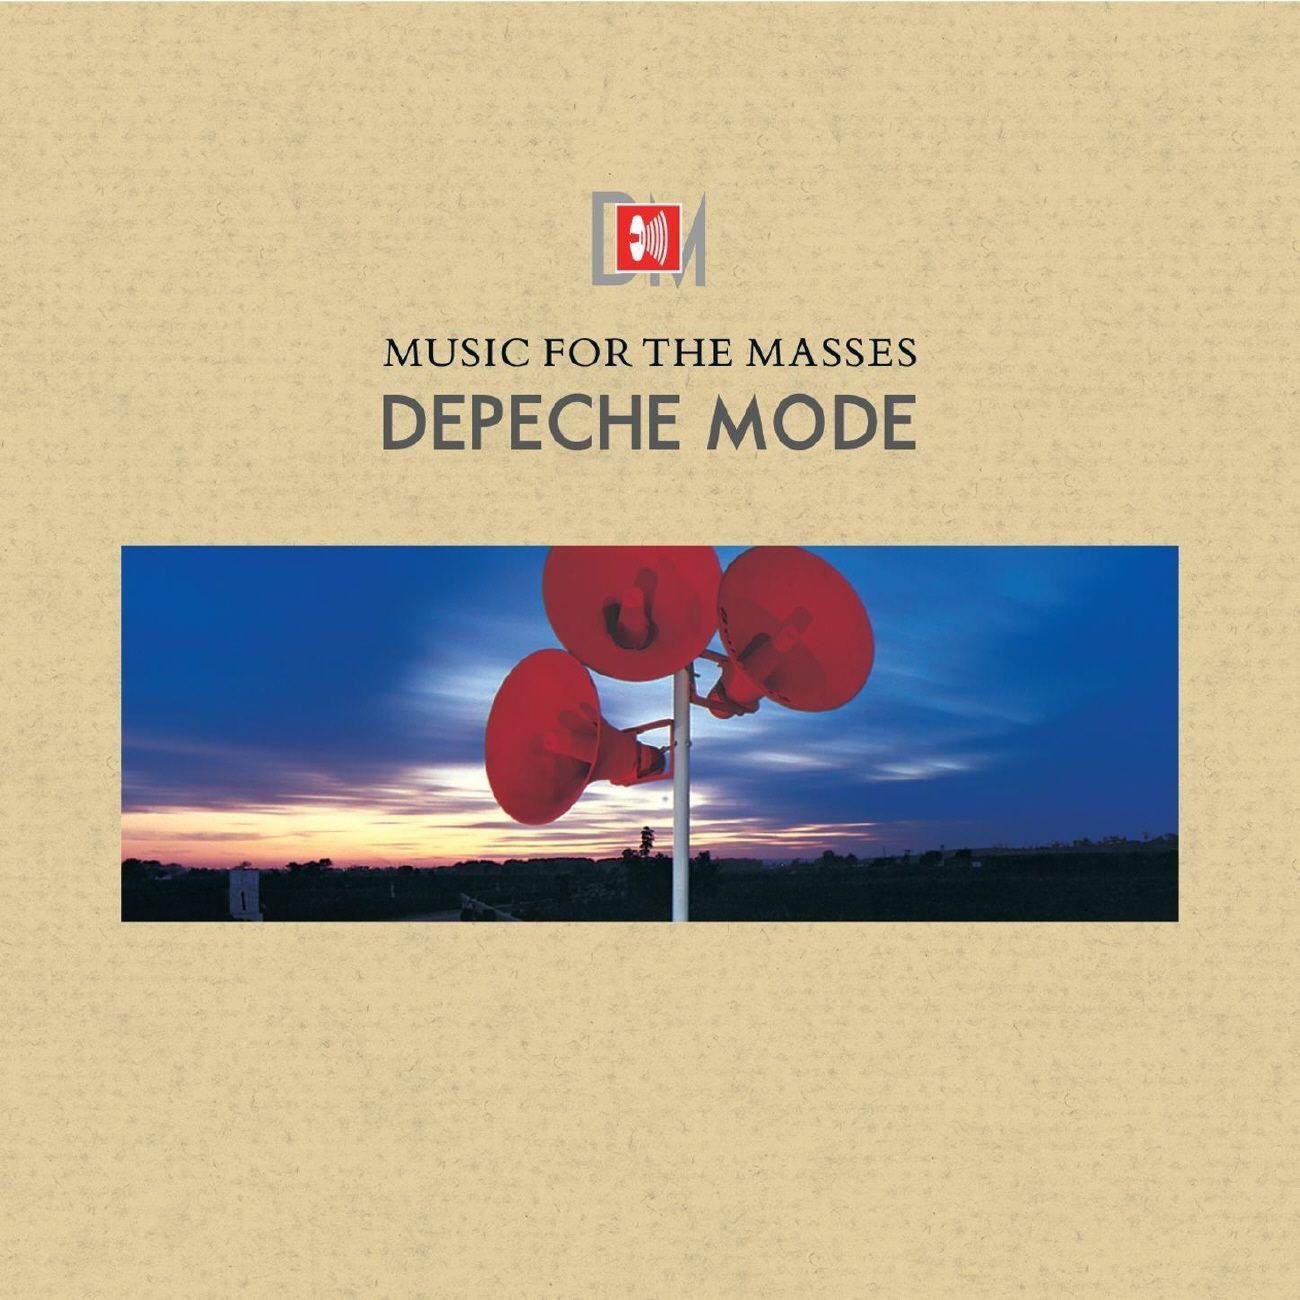 Depeche Mode, Music For The Masses. (Mute Records)